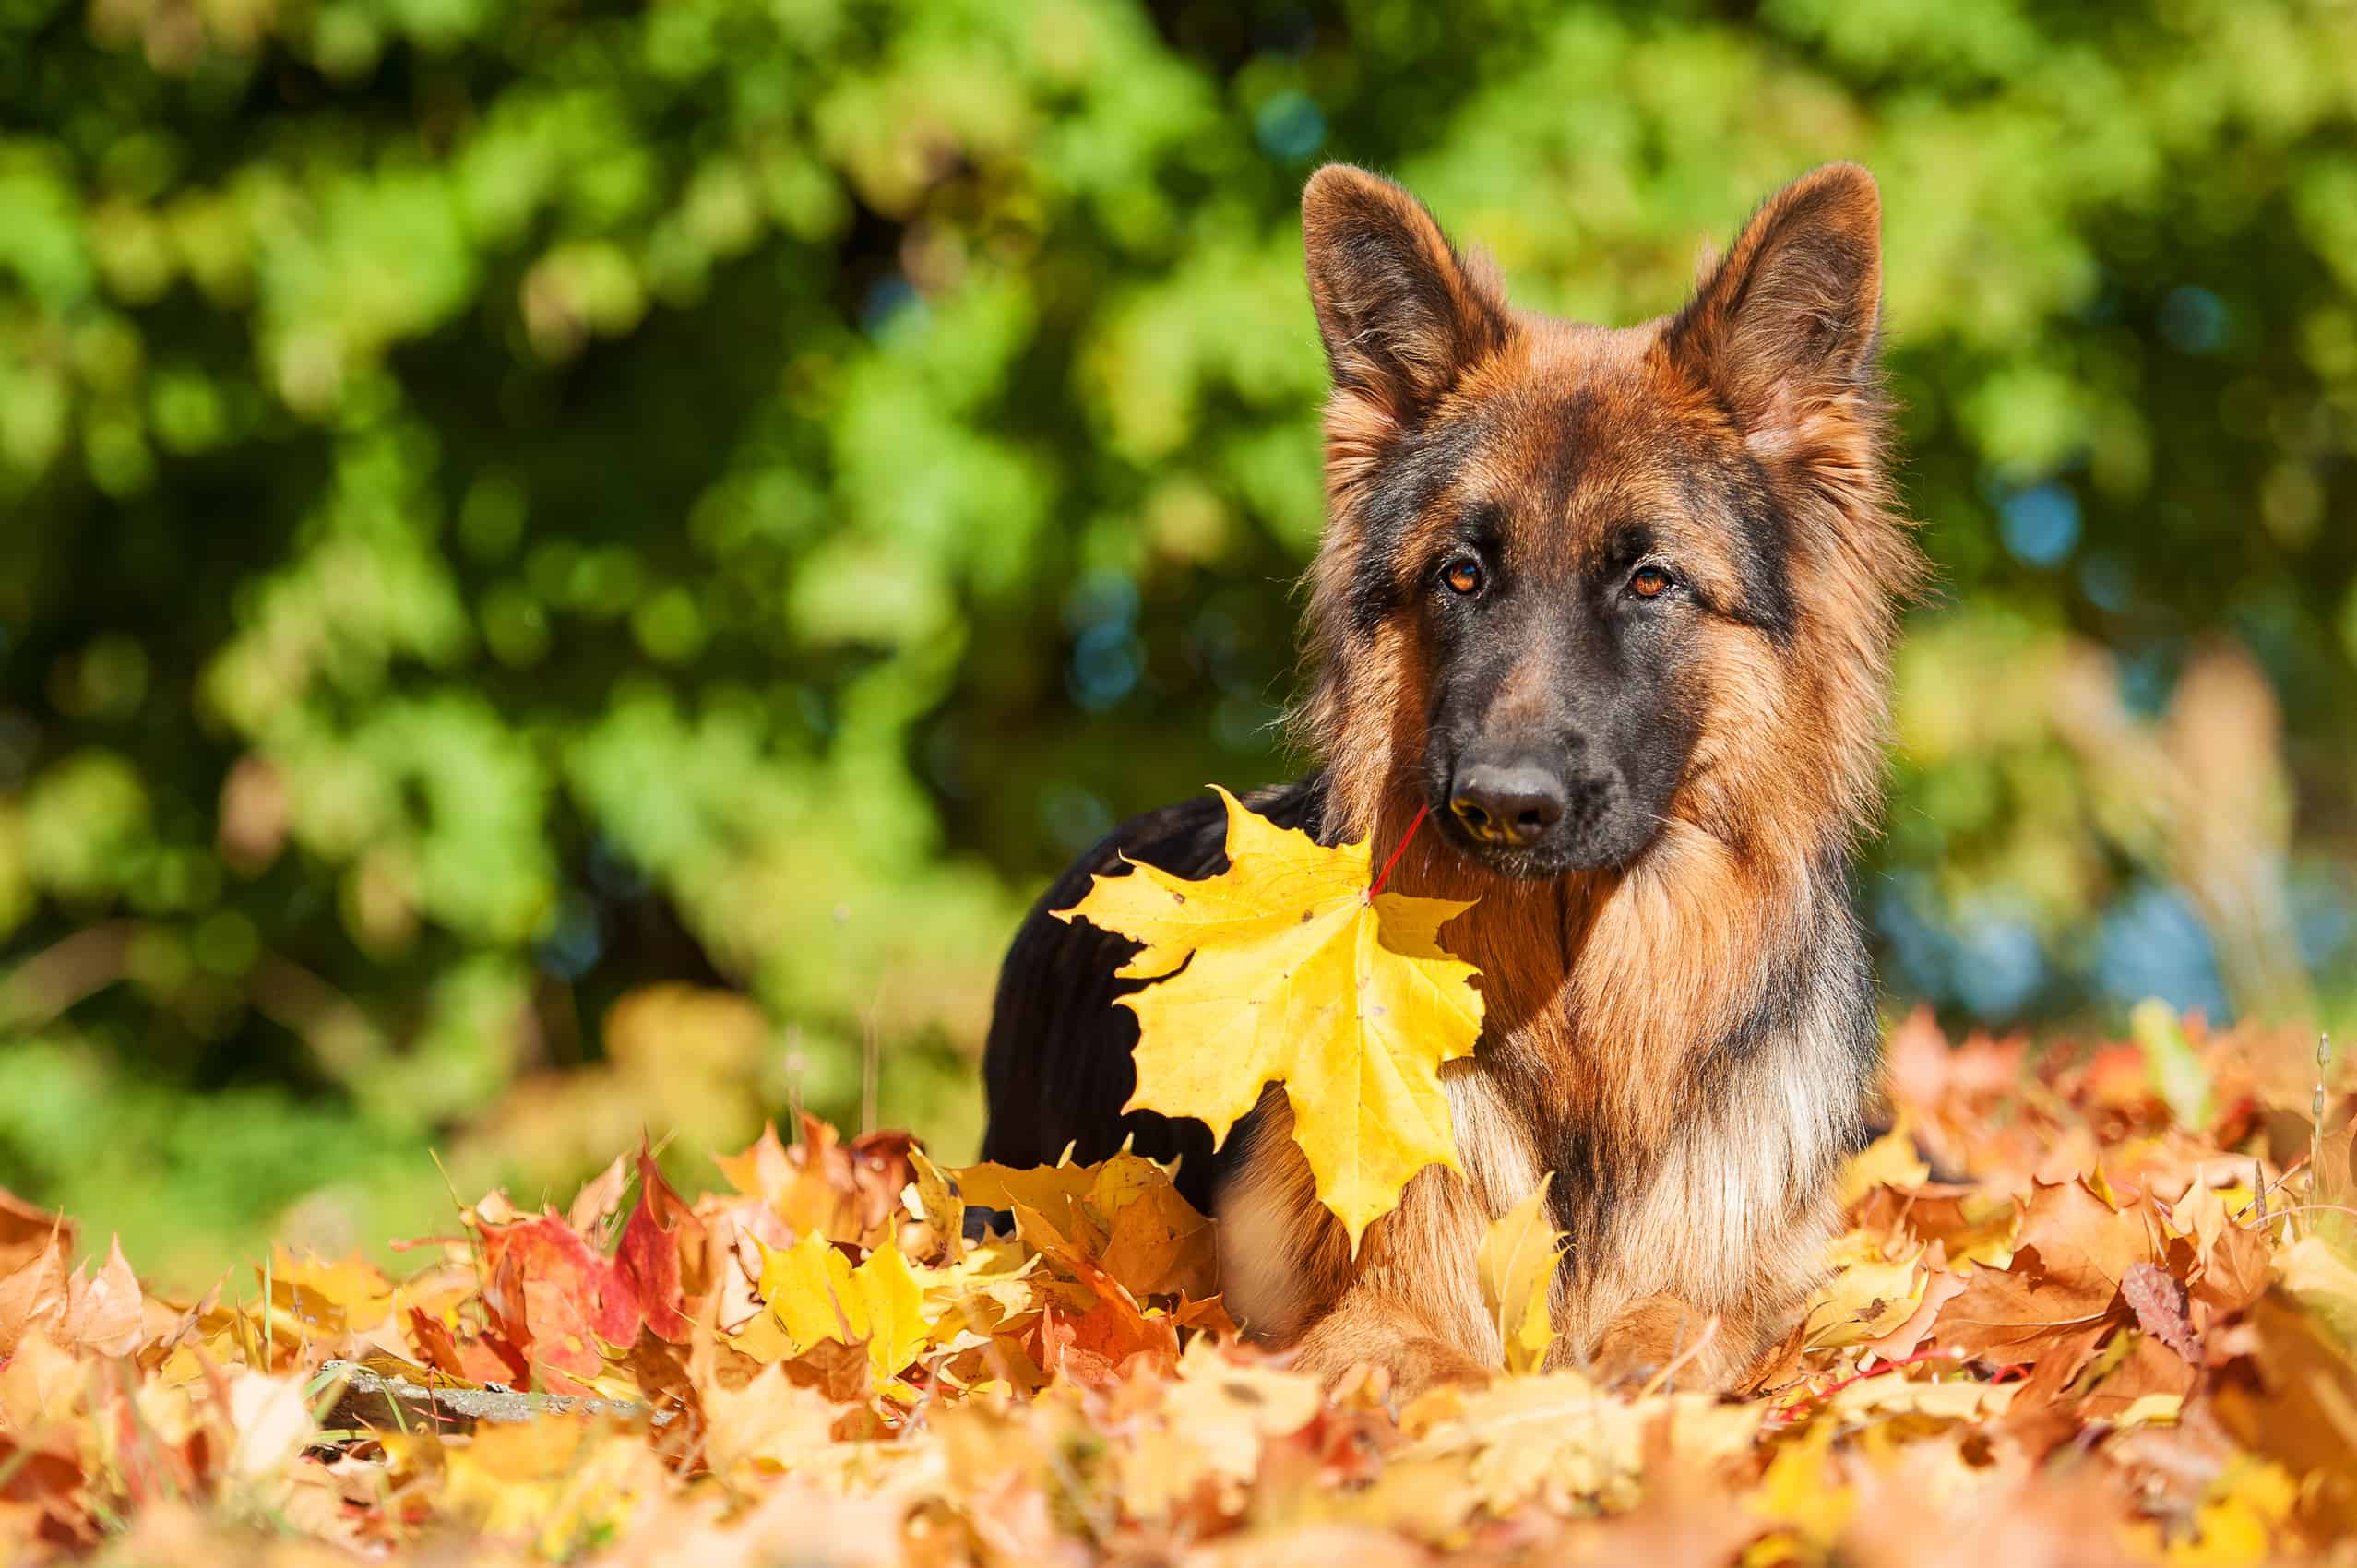 Apollo lounging in autumn leaves. Thinking of naming your german shepherd dog? these names are great!